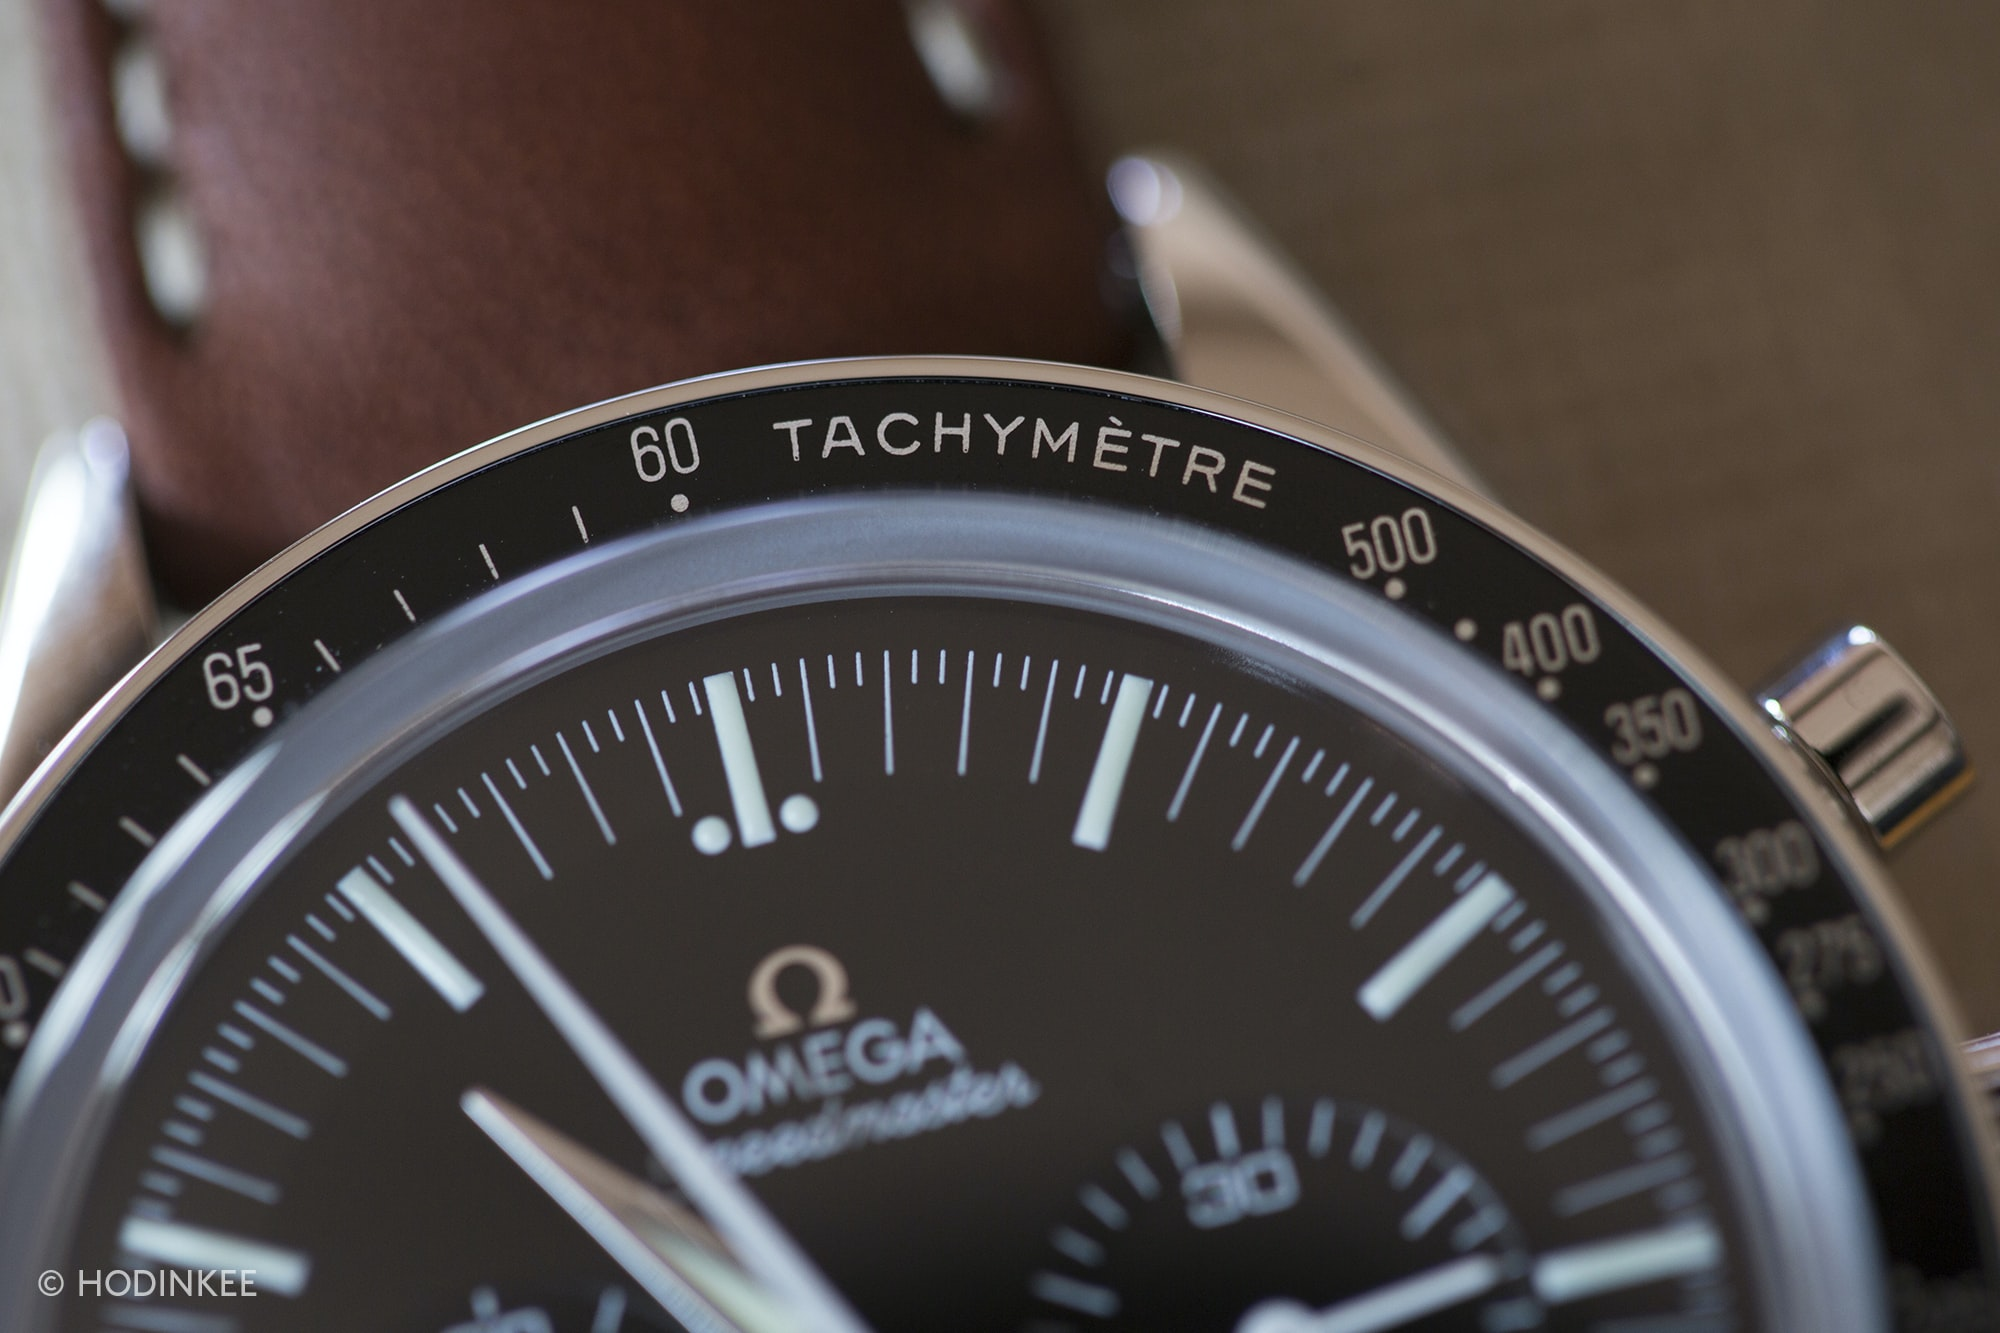 Omega Speedmaster First Omega In Space Tachymeter A Week On The Wrist: The Omega Speedmaster 'First Omega In Space' A Week On The Wrist: The Omega Speedmaster 'First Omega In Space' 588A0202 copy